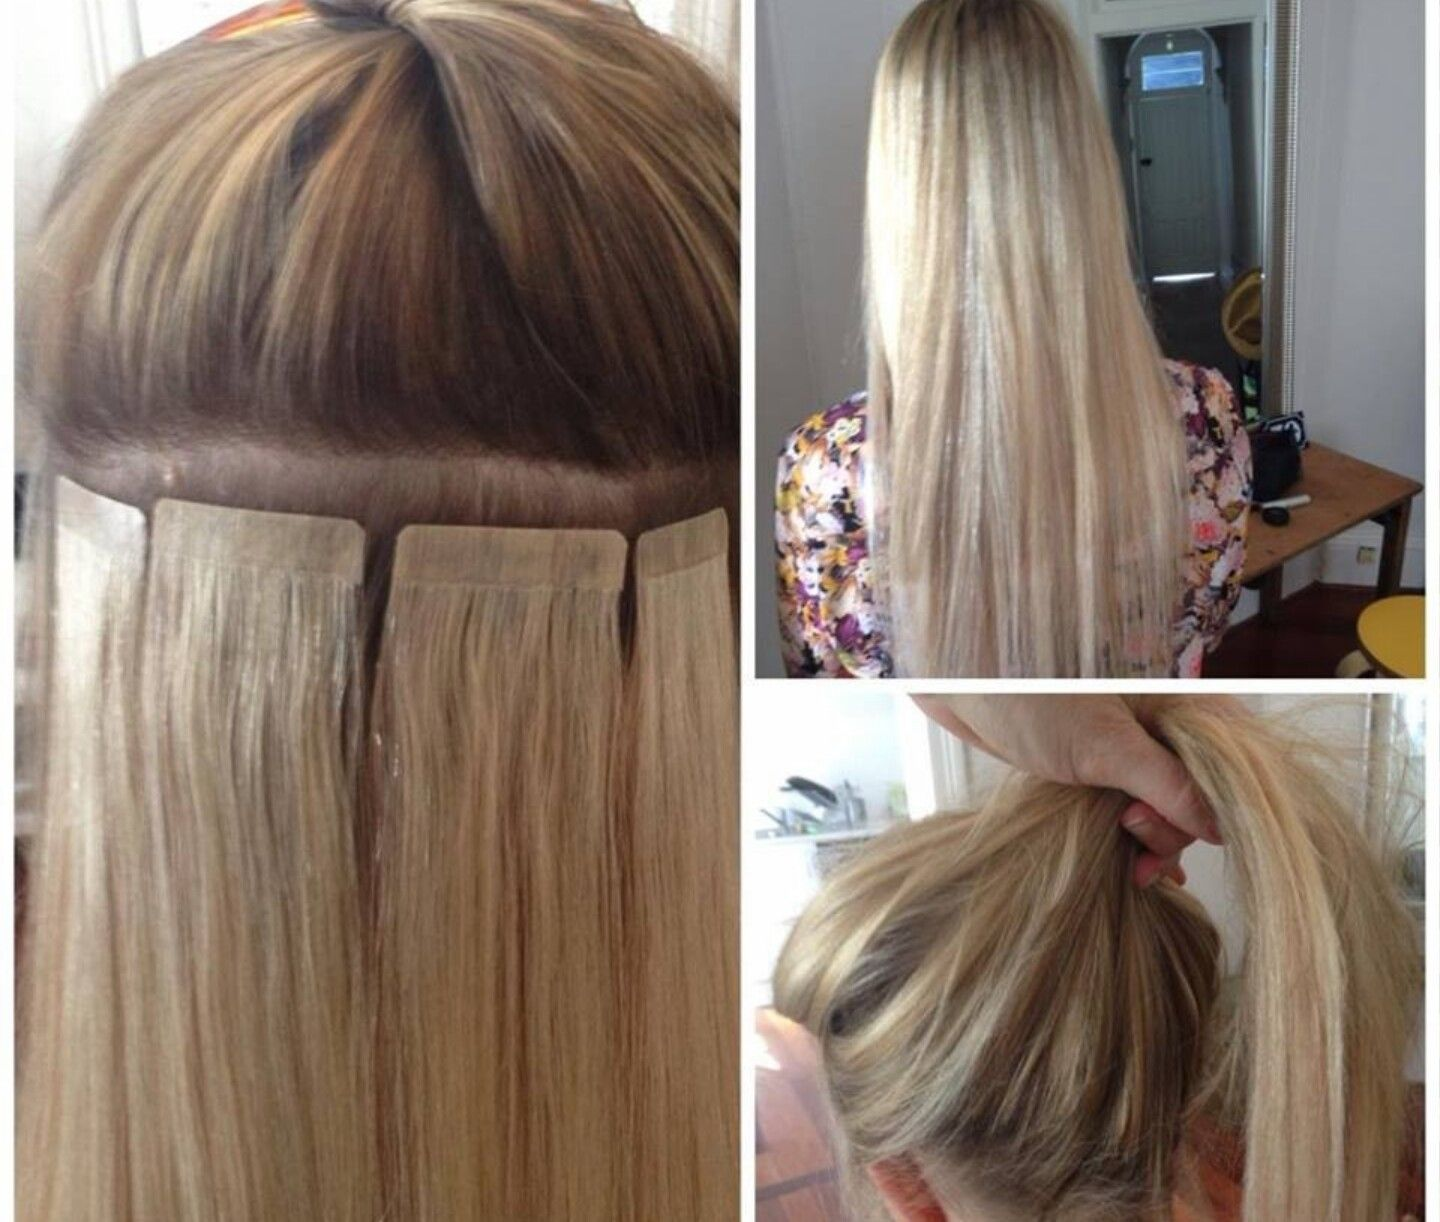 Pin By Kelly Amato On Hair Extensions Pinterest Hair Extensions